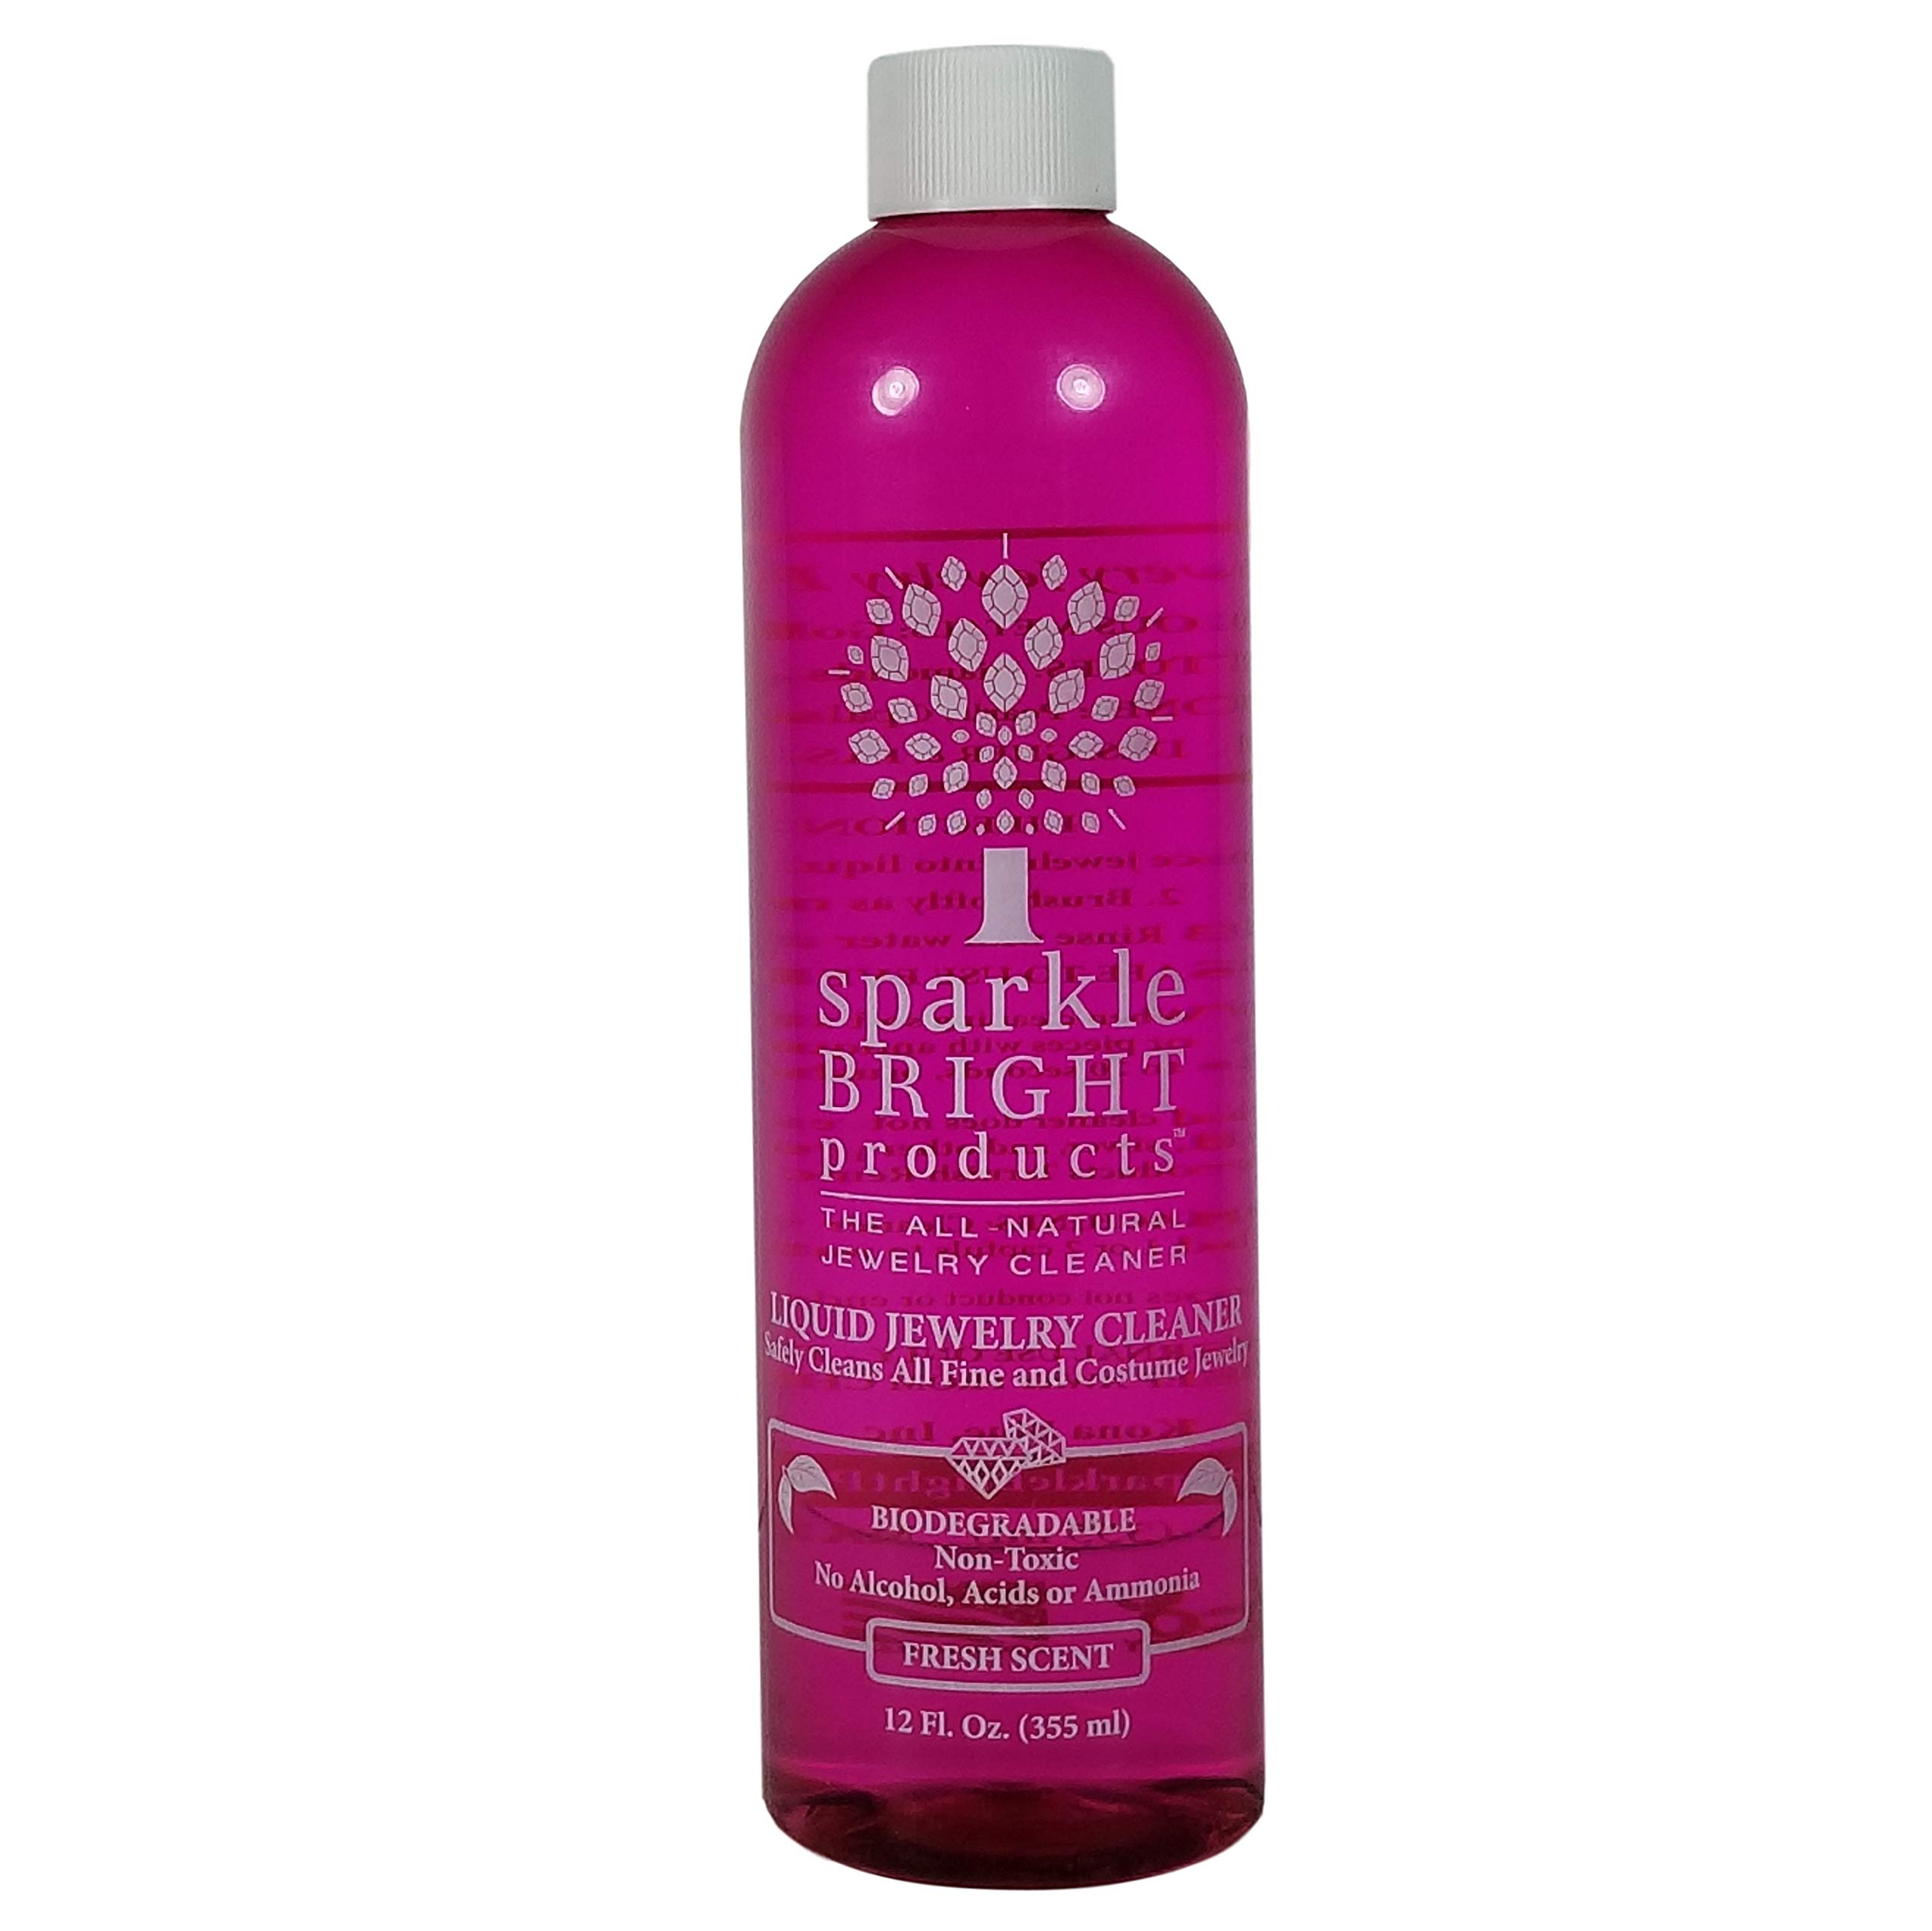 Sparkle Bright Products All-Natural Jewelry Cleaner   Liquid Jewelry Cleaning Solution, 12oz. Refill Bottle   Ultrasonics, Diamonds, Fine, Fashion, and Designer Jewelry